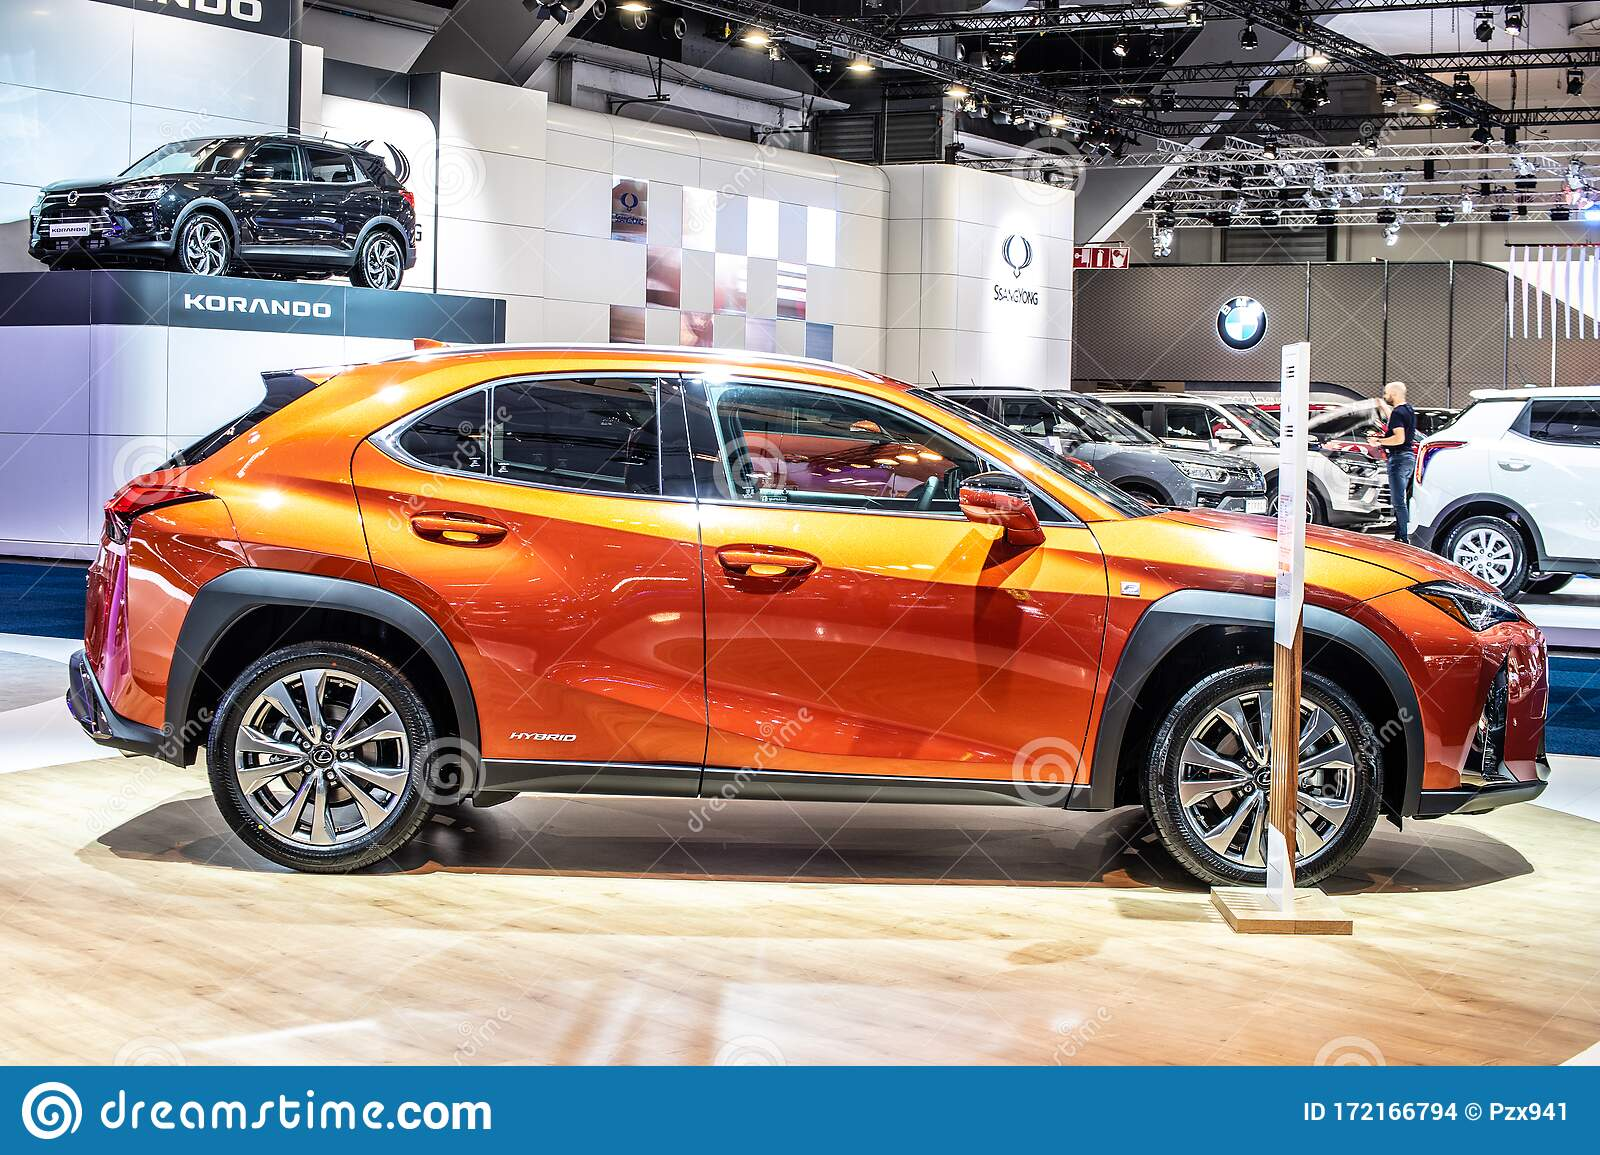 New Lexus Ux 250h Hybrid Compact Luxury Crossover At Brussels Motor Show Suv Produced By Japanese Car Maker Lexus Editorial Stock Image Image Of Lexus Expensive 172166794